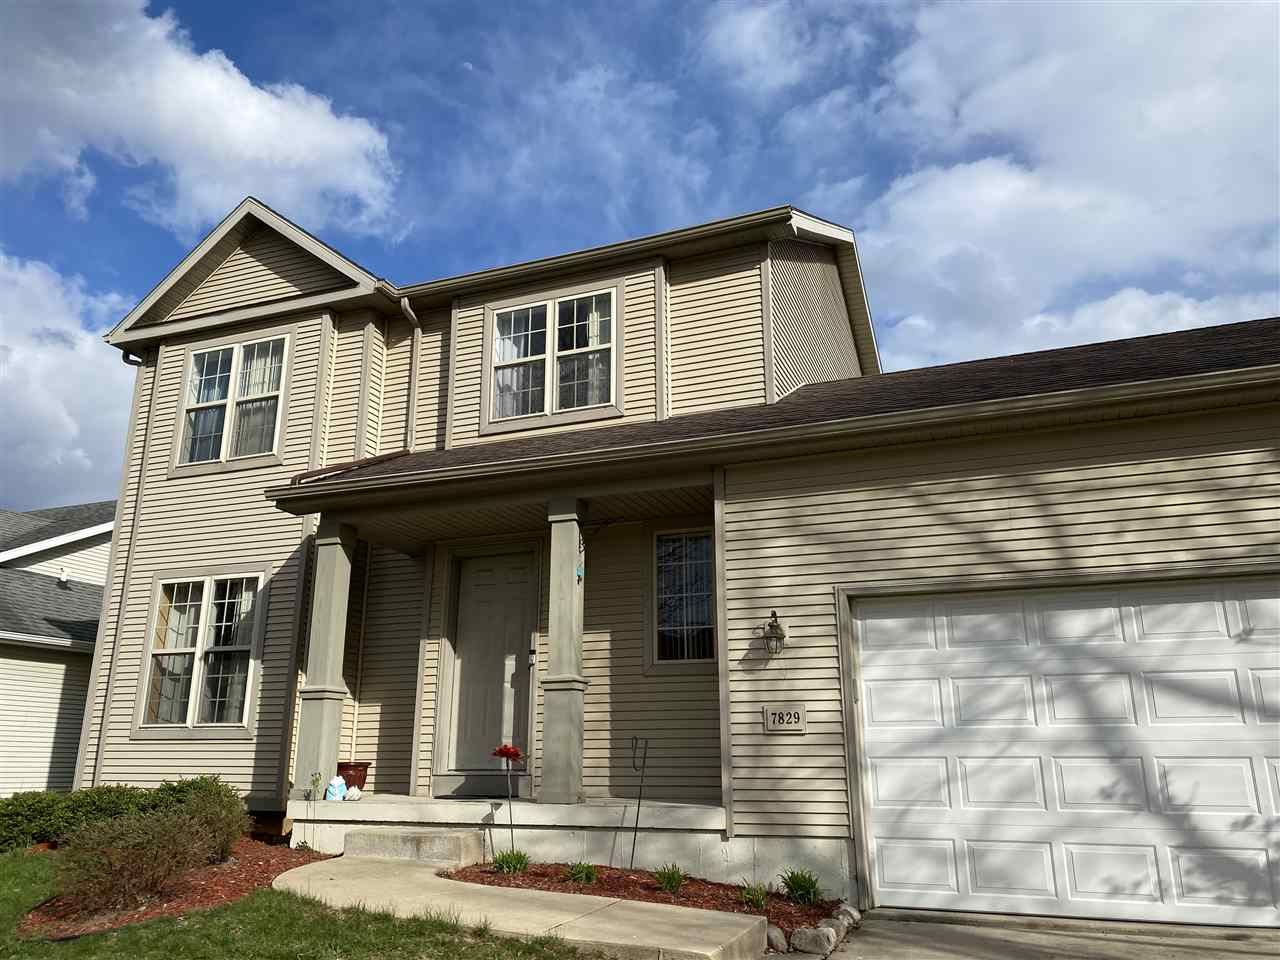 7829 Wood Reed Dr, Madison, WI 53719 - #: 1907110